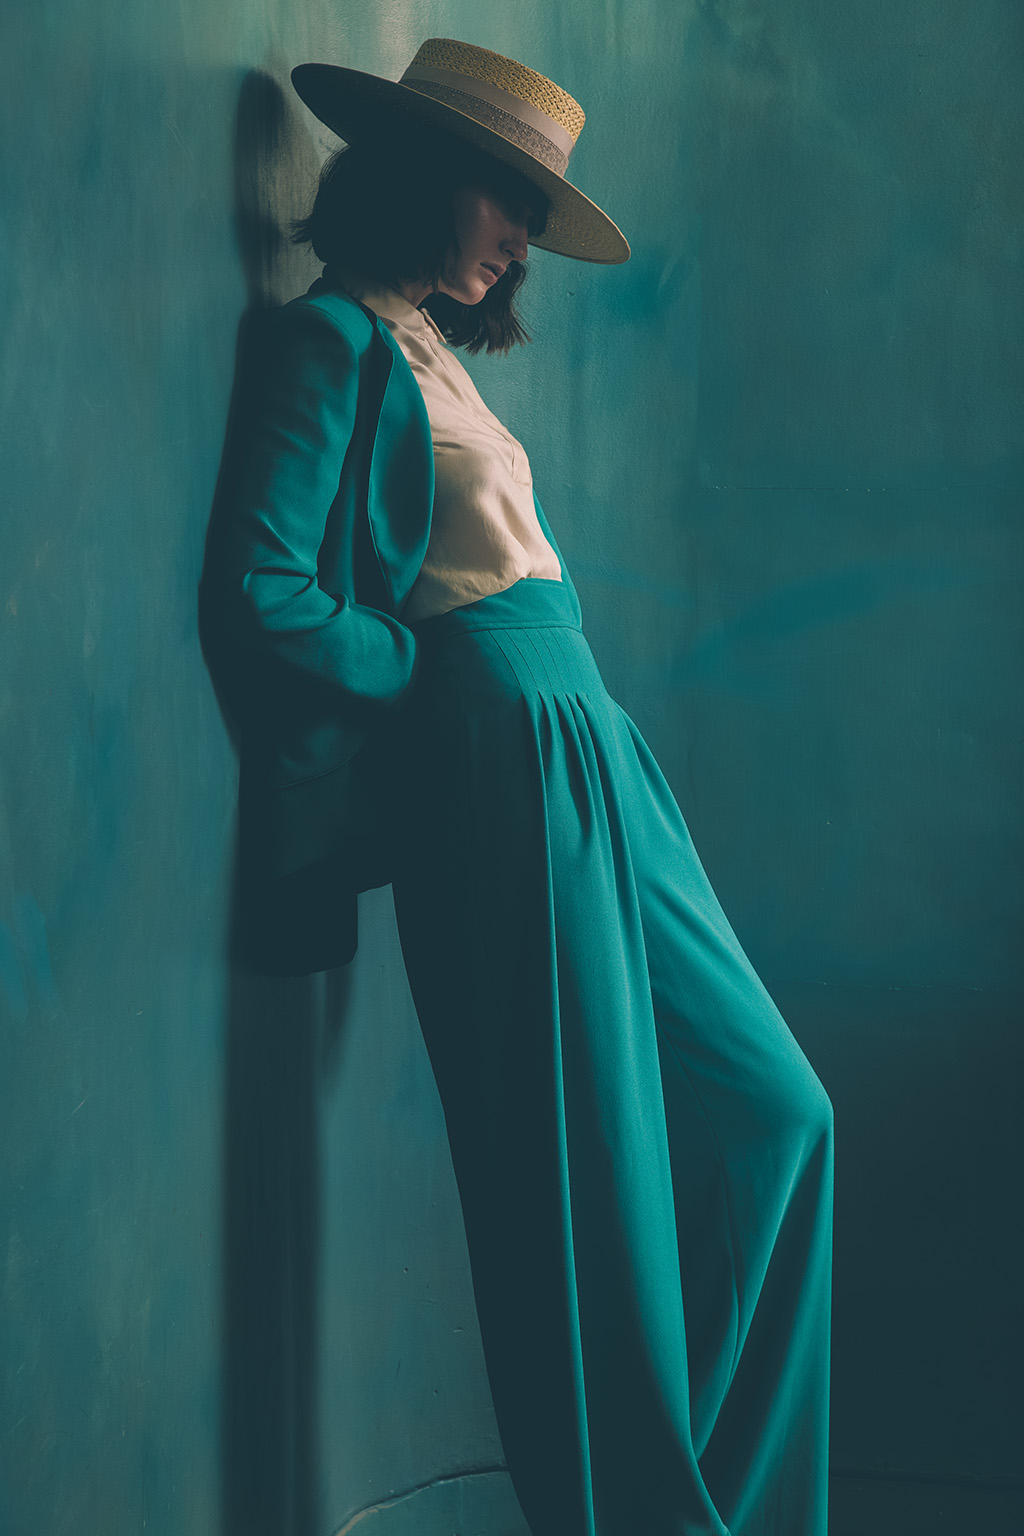 What has been your most memorable shoot? - Probably the Lock Hatters' SS17 women's shoot, where I had an idea to shoot the model who was wearing a beautiful turquoise two piece suit (styled by The Style Siblings), to pose against a wall which had an almost identical color to the suit. Thinking it would clash, I was hesitant, but my colleagues encouraged me to try it. I took the first shot and almost collapsed from how powerful the shot looked; it was instantly my favorite shot I had ever taken. Speaking of collapsing, about 20 seconds after I took that shot, the model fell down the stairs and broke her ankle...What's creepy is the fact that her boyfriend, who is also a model, was also shooting that day, and had also broken his leg and was in another hospital in London at the same time. Bizarre. So yeah, that was pretty memorable!